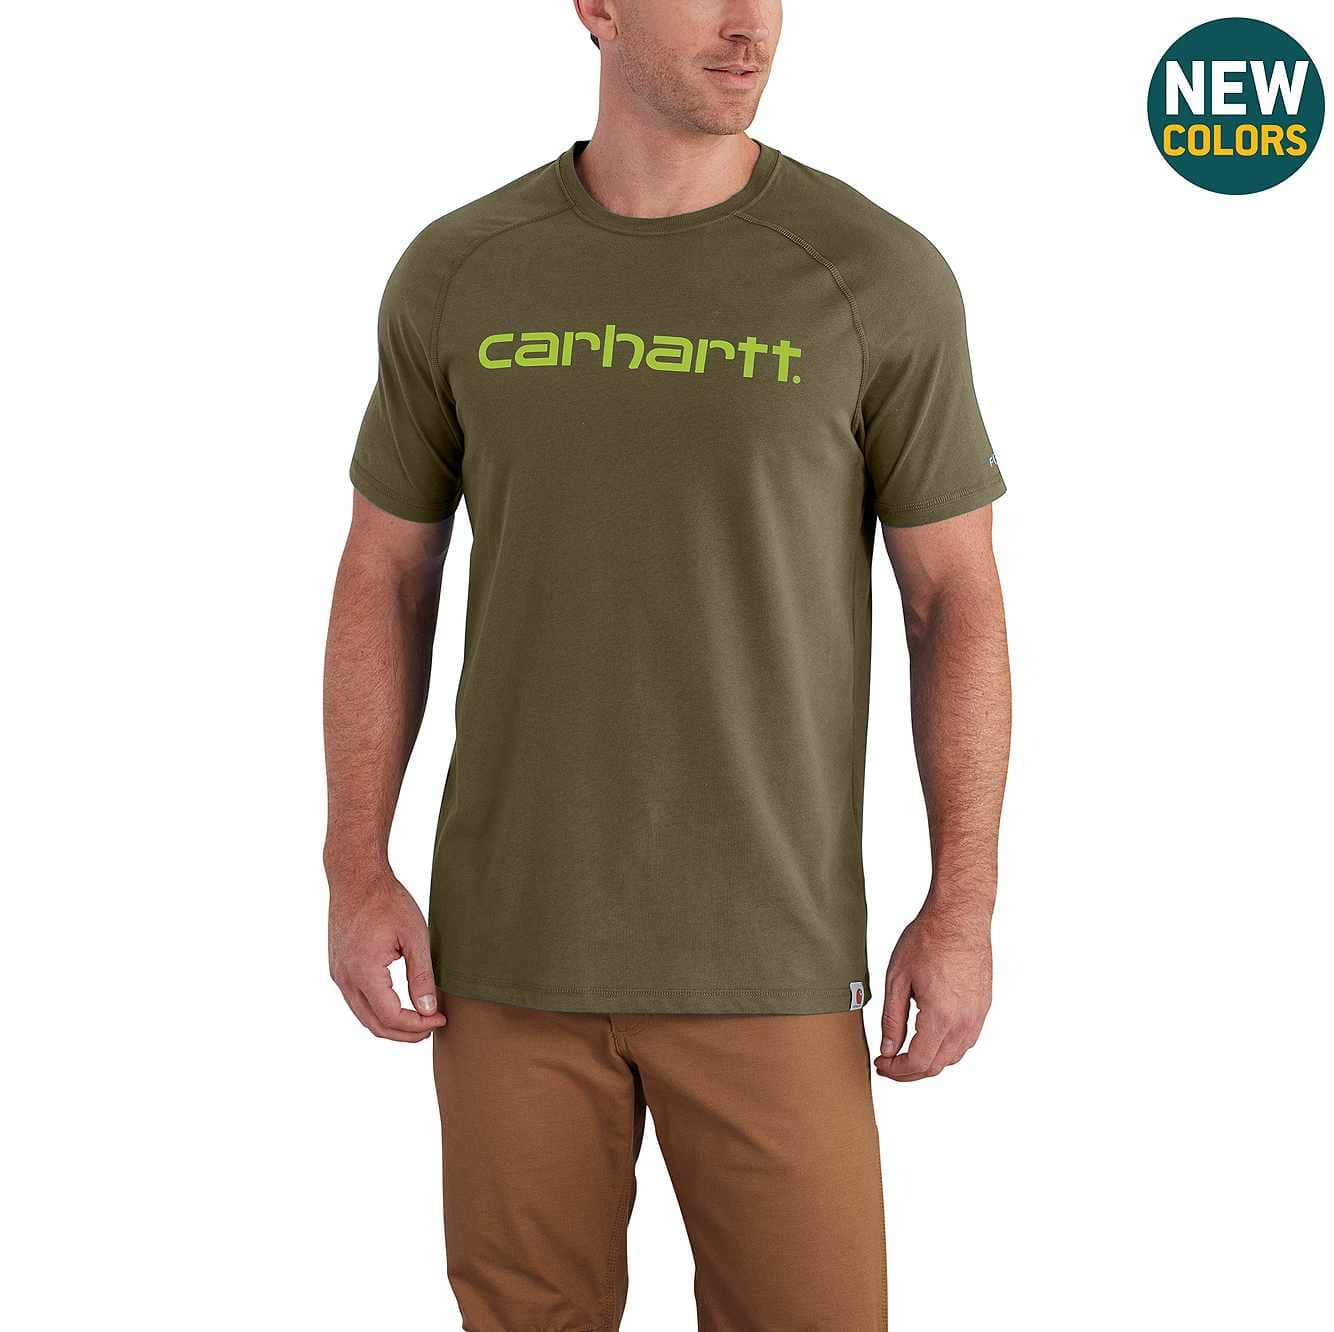 Picture of Carhartt Force® Cotton Delmont Graphic Short Sleeve Shirt in Moss